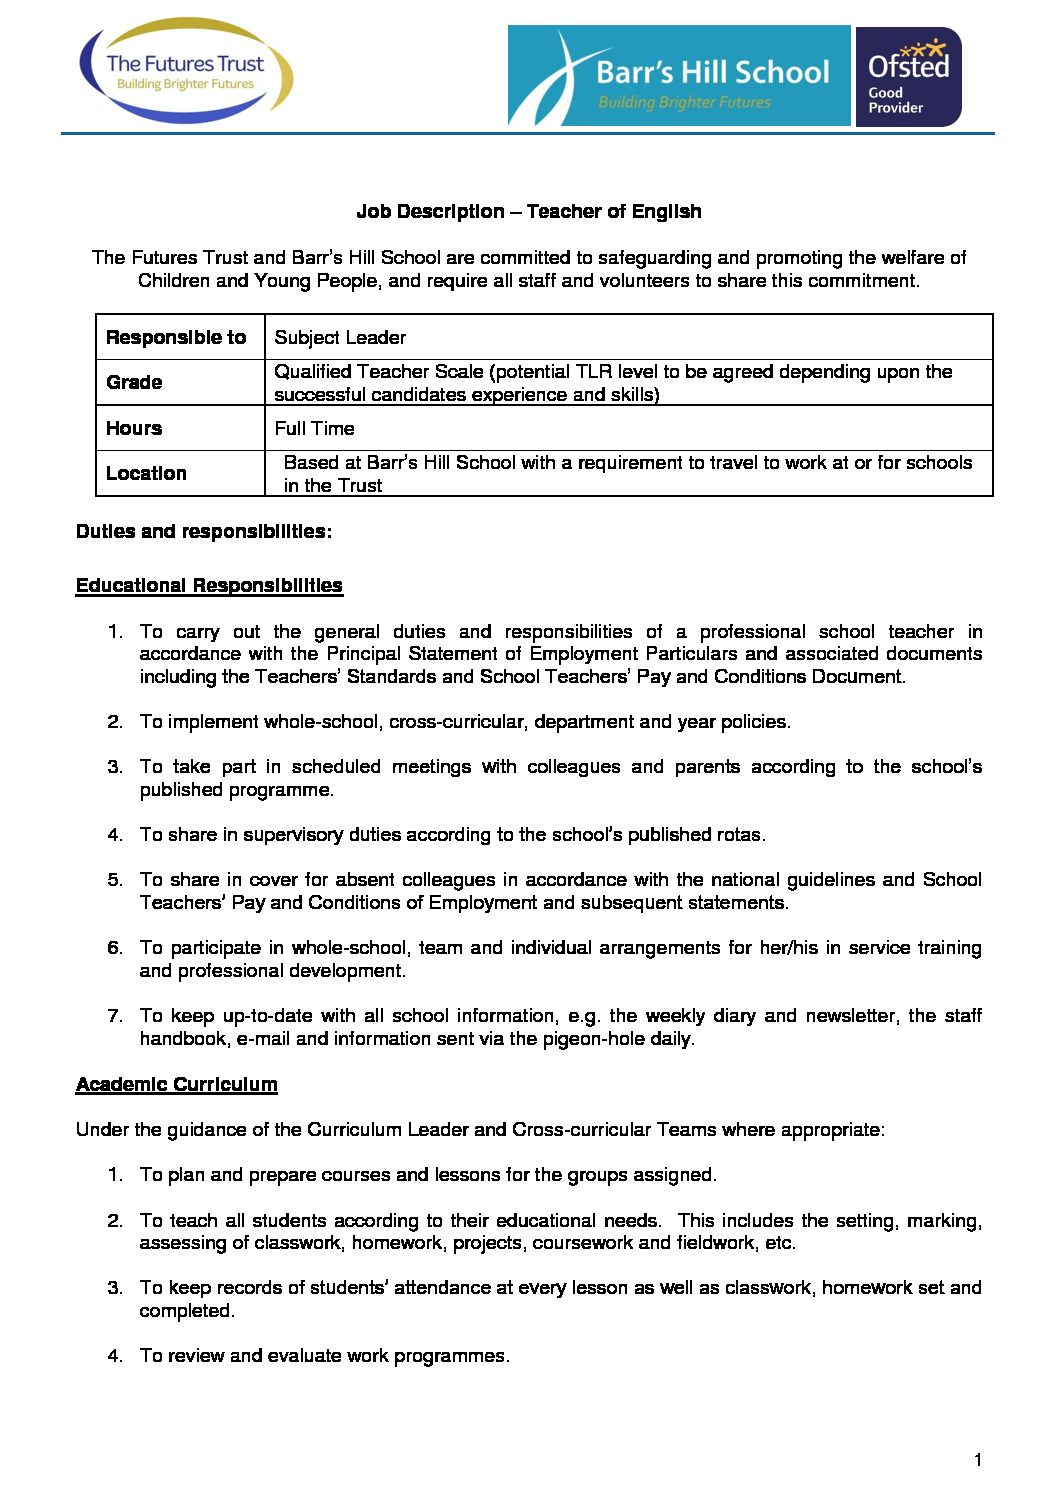 BH Job Description English Teacher - Barr's Hill School